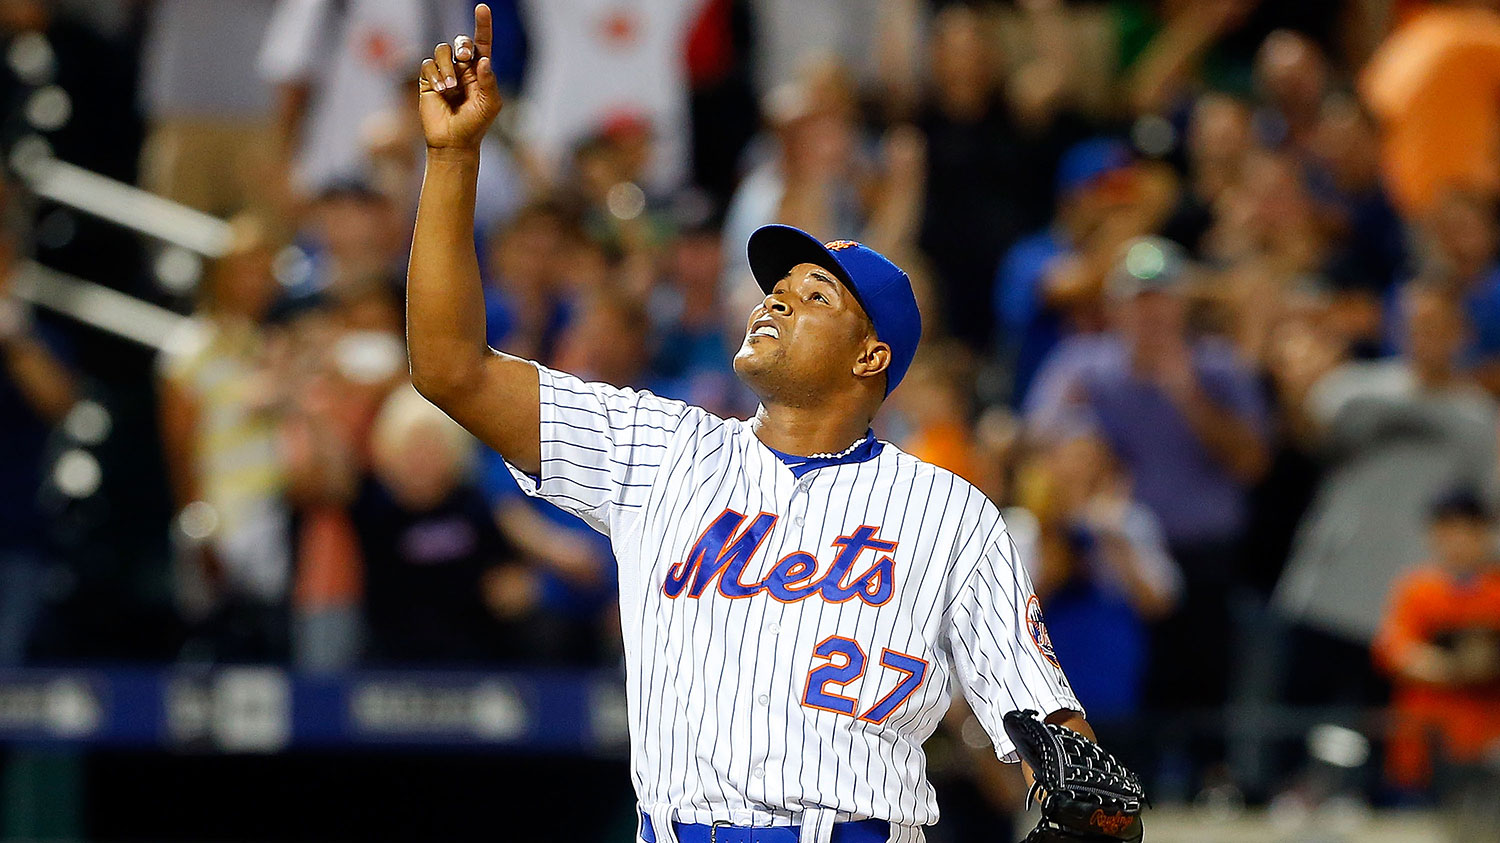 The Mets know Jeurys Familia is their closer, but who will be his setup man?